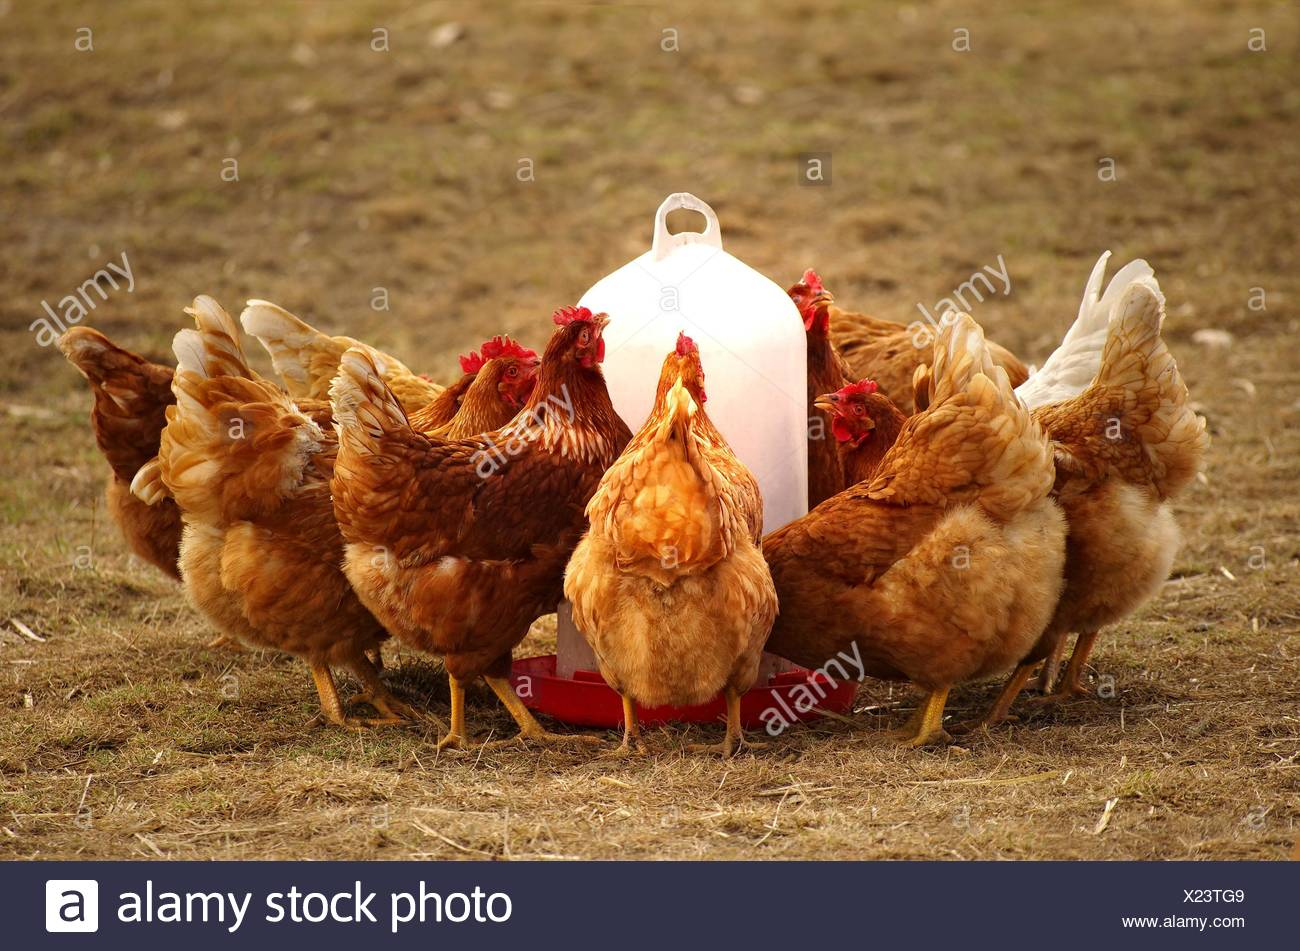 group hens in free range at the feeding trough - Stock Image